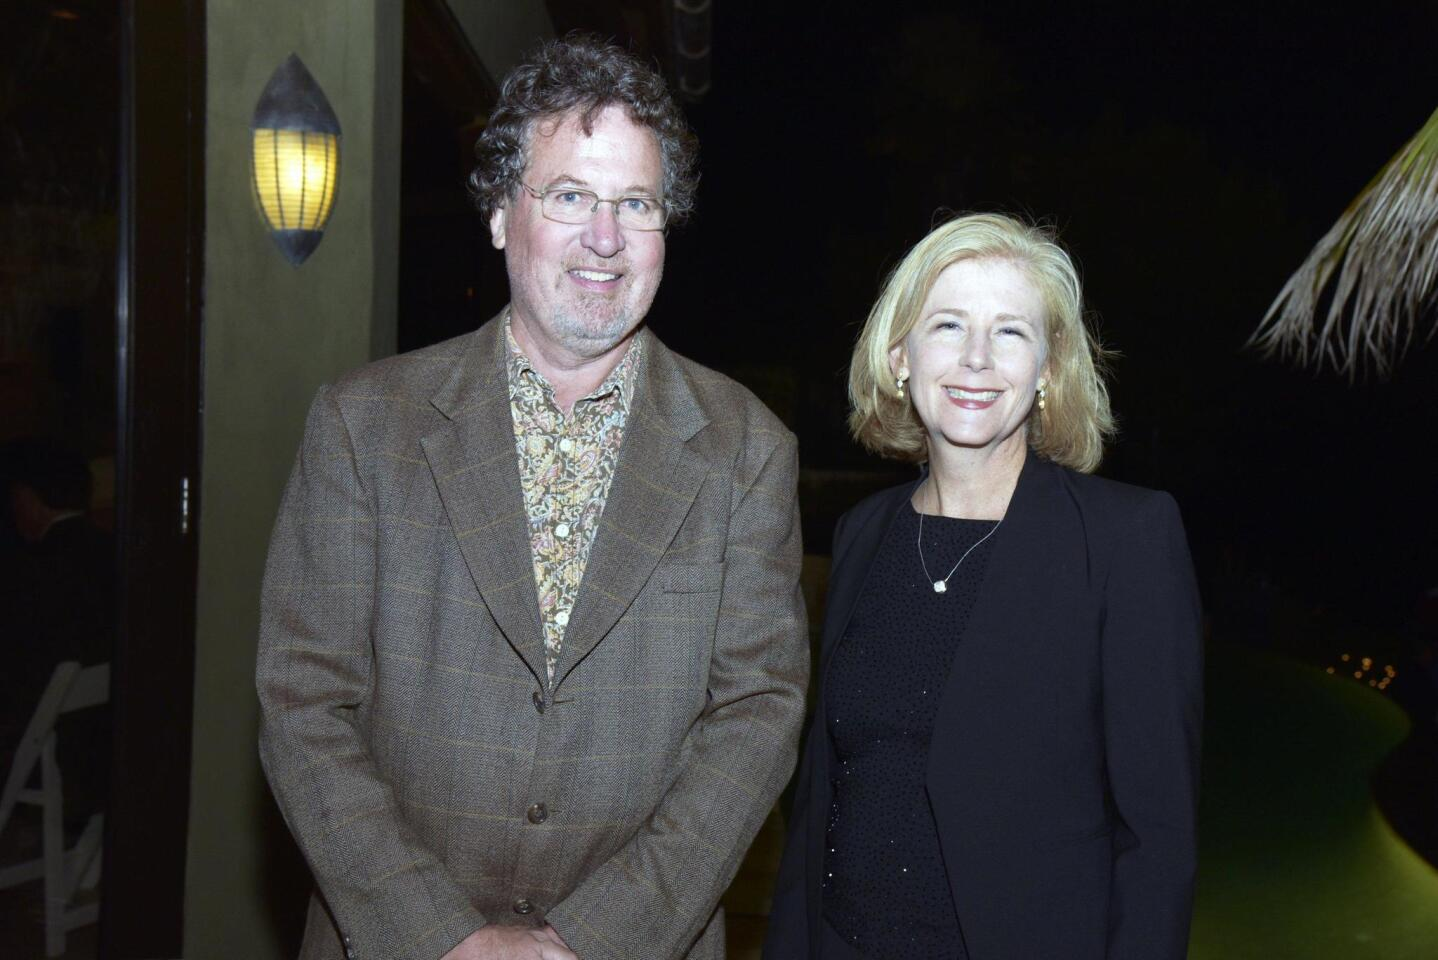 UCSD Theatre & Dance promotions manager Mark Maltby, Arts & Humanities Senior director of development Julie Bronstein